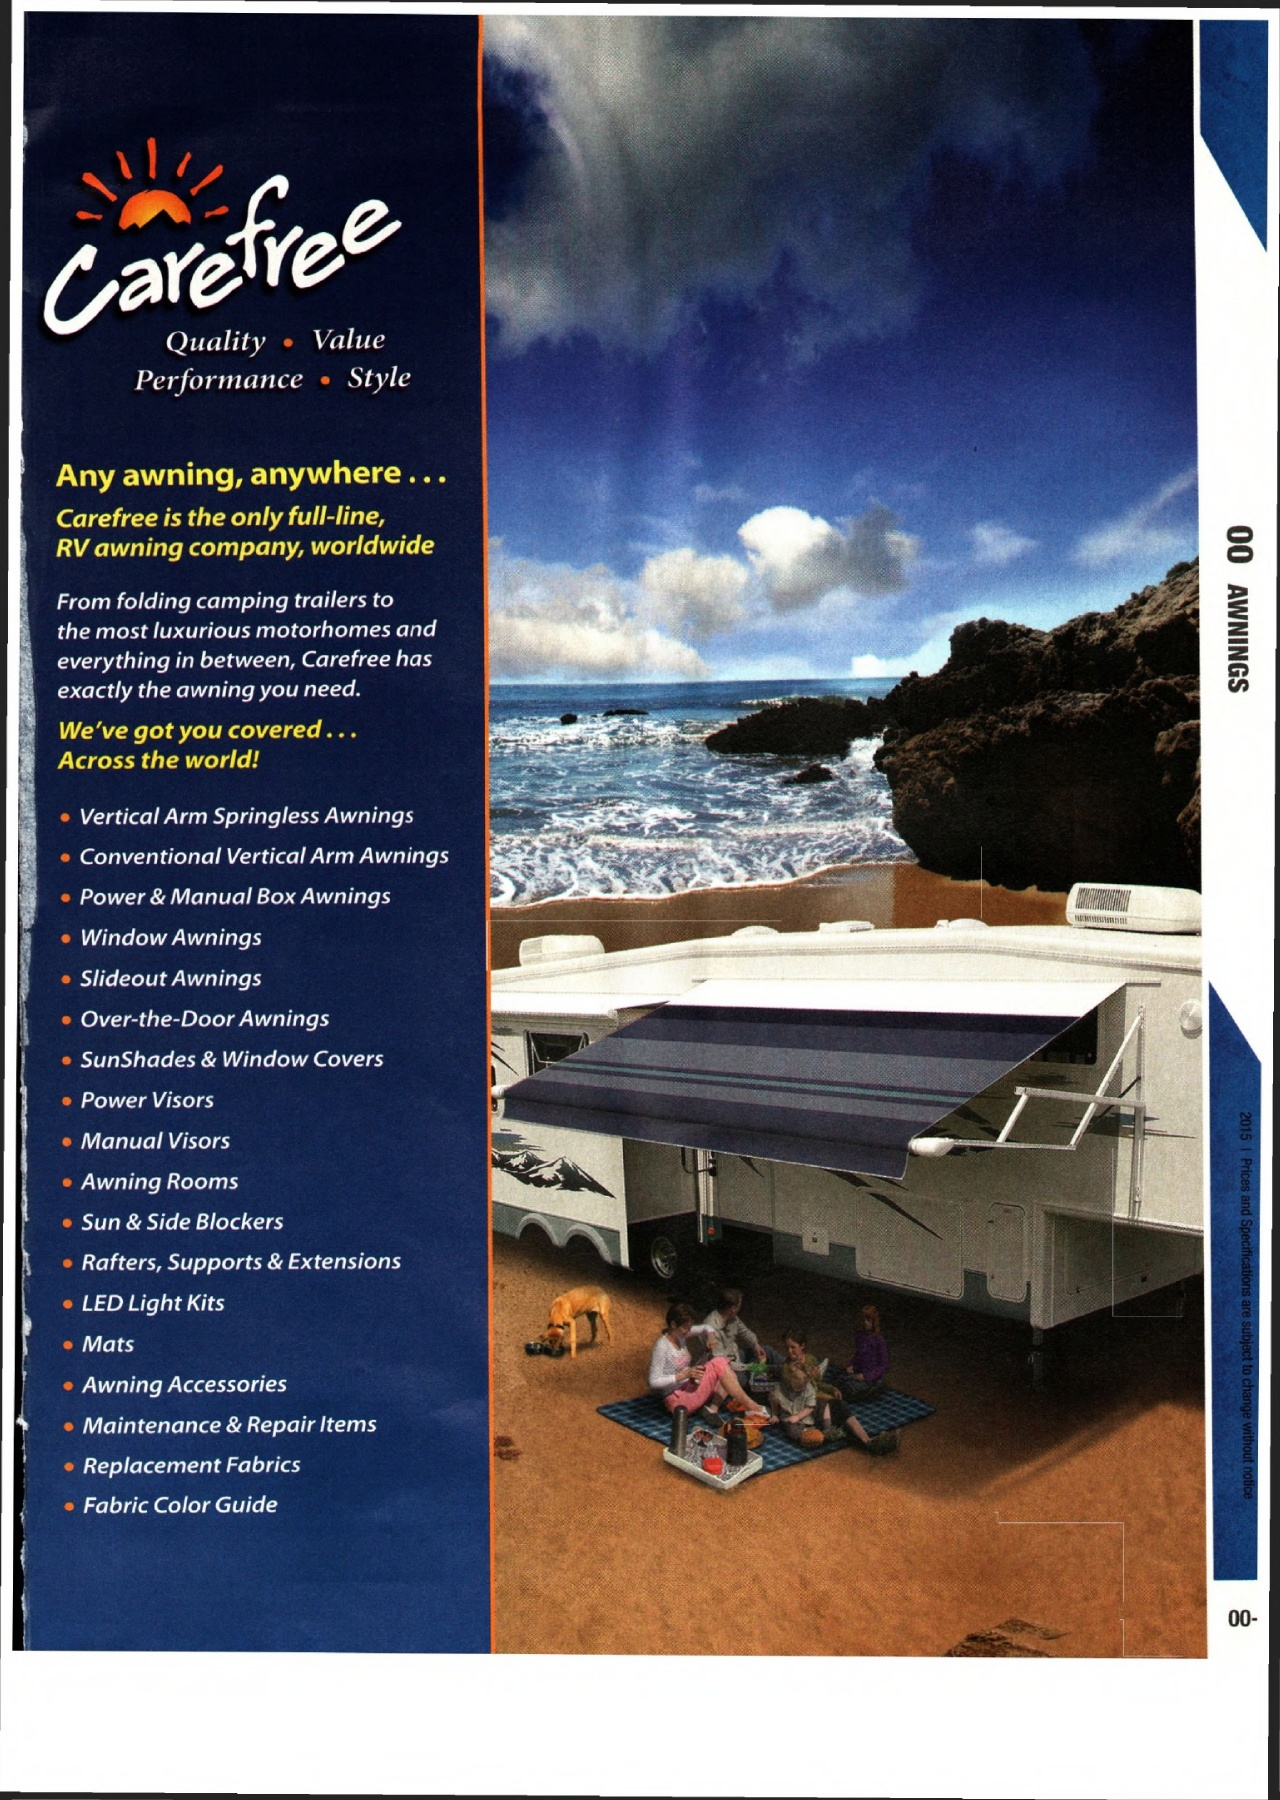 Solera Universal Fit Heavy-Duty Vinyl RV Patio Awning Replacement Fabric Blue Fade 15 Awning 144 Fabric